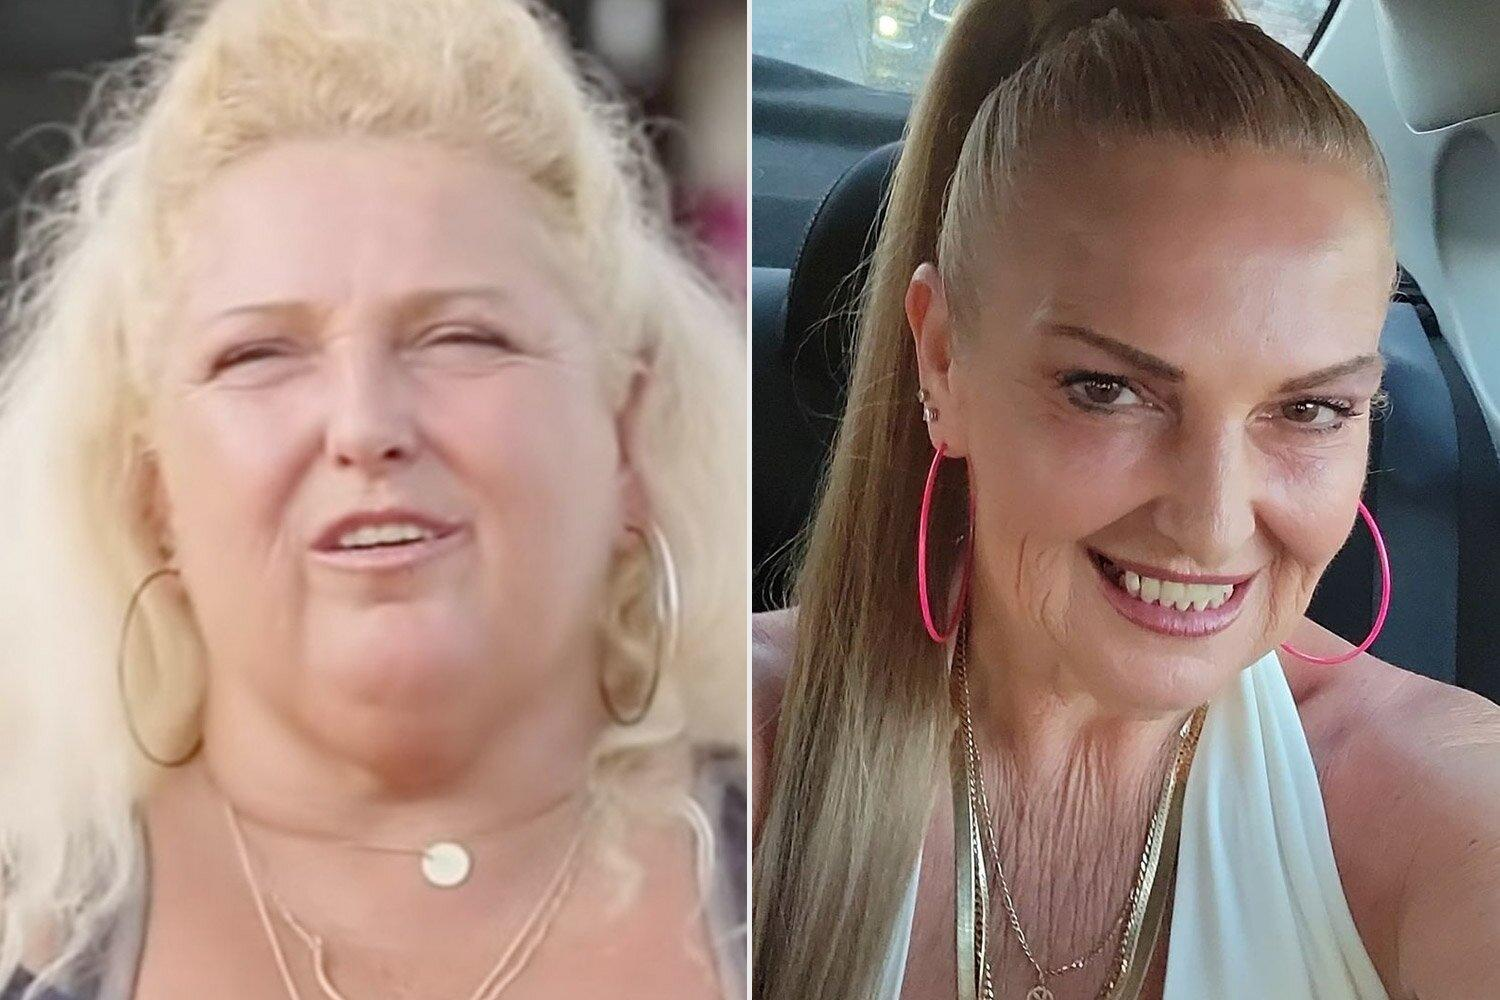 90 Day Fiancé 's Angela Deem Shows Off Her New Look After Surgery and 90-Lb. Weight Loss